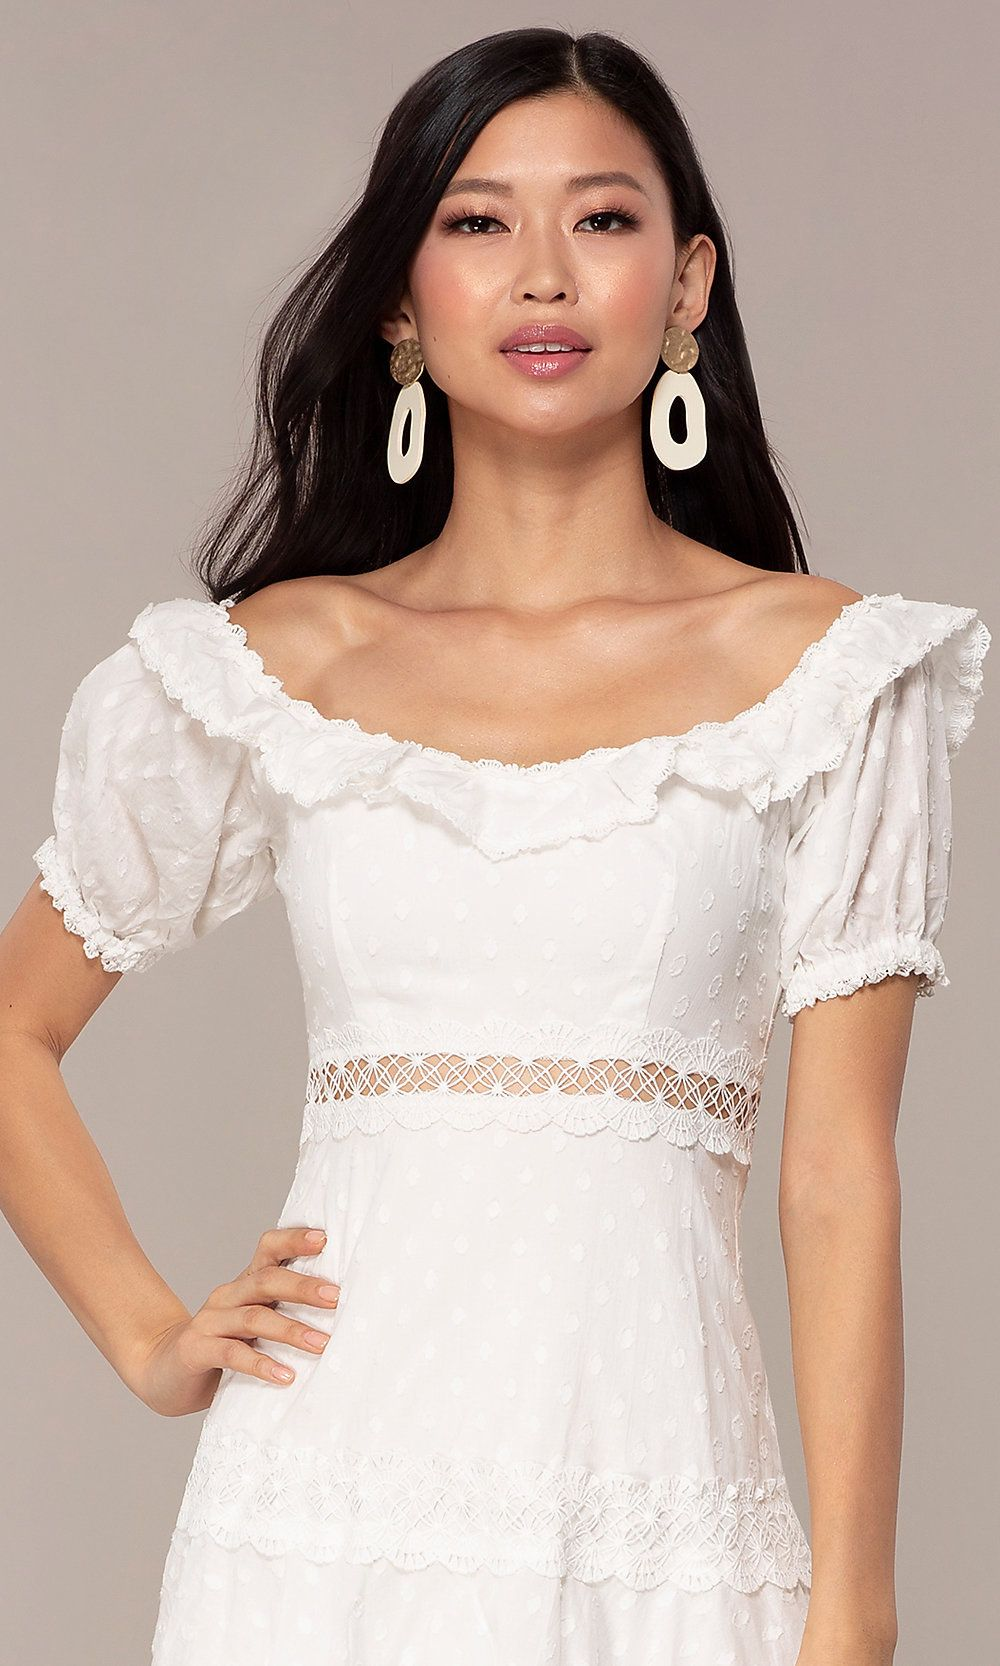 dcf89b508e2 White Short Off-the-Shoulder Grad Party Dress in 2019